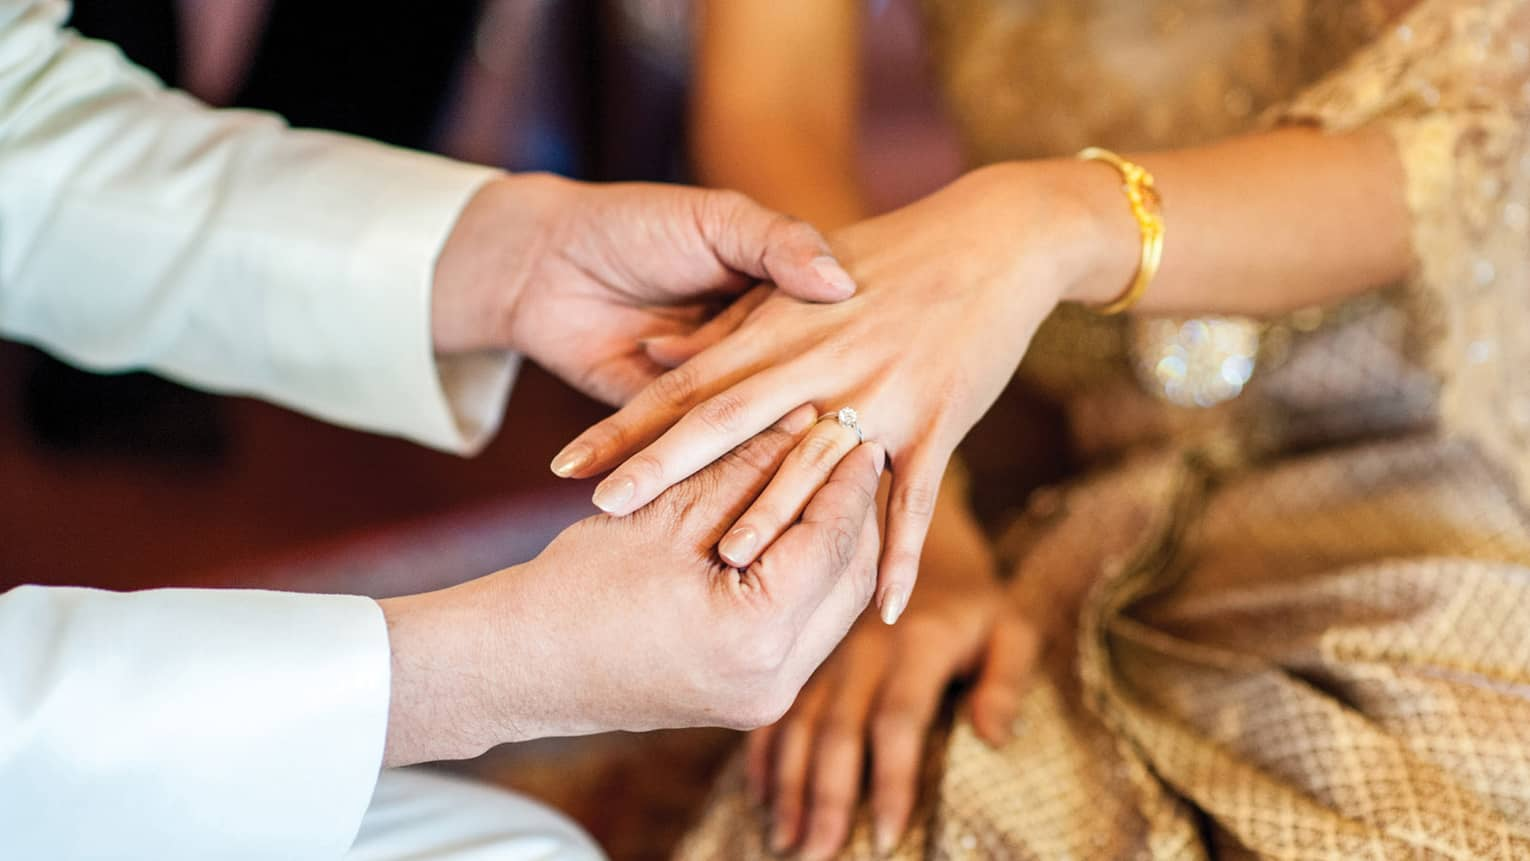 Groom slips wedding ring onto bride's finger